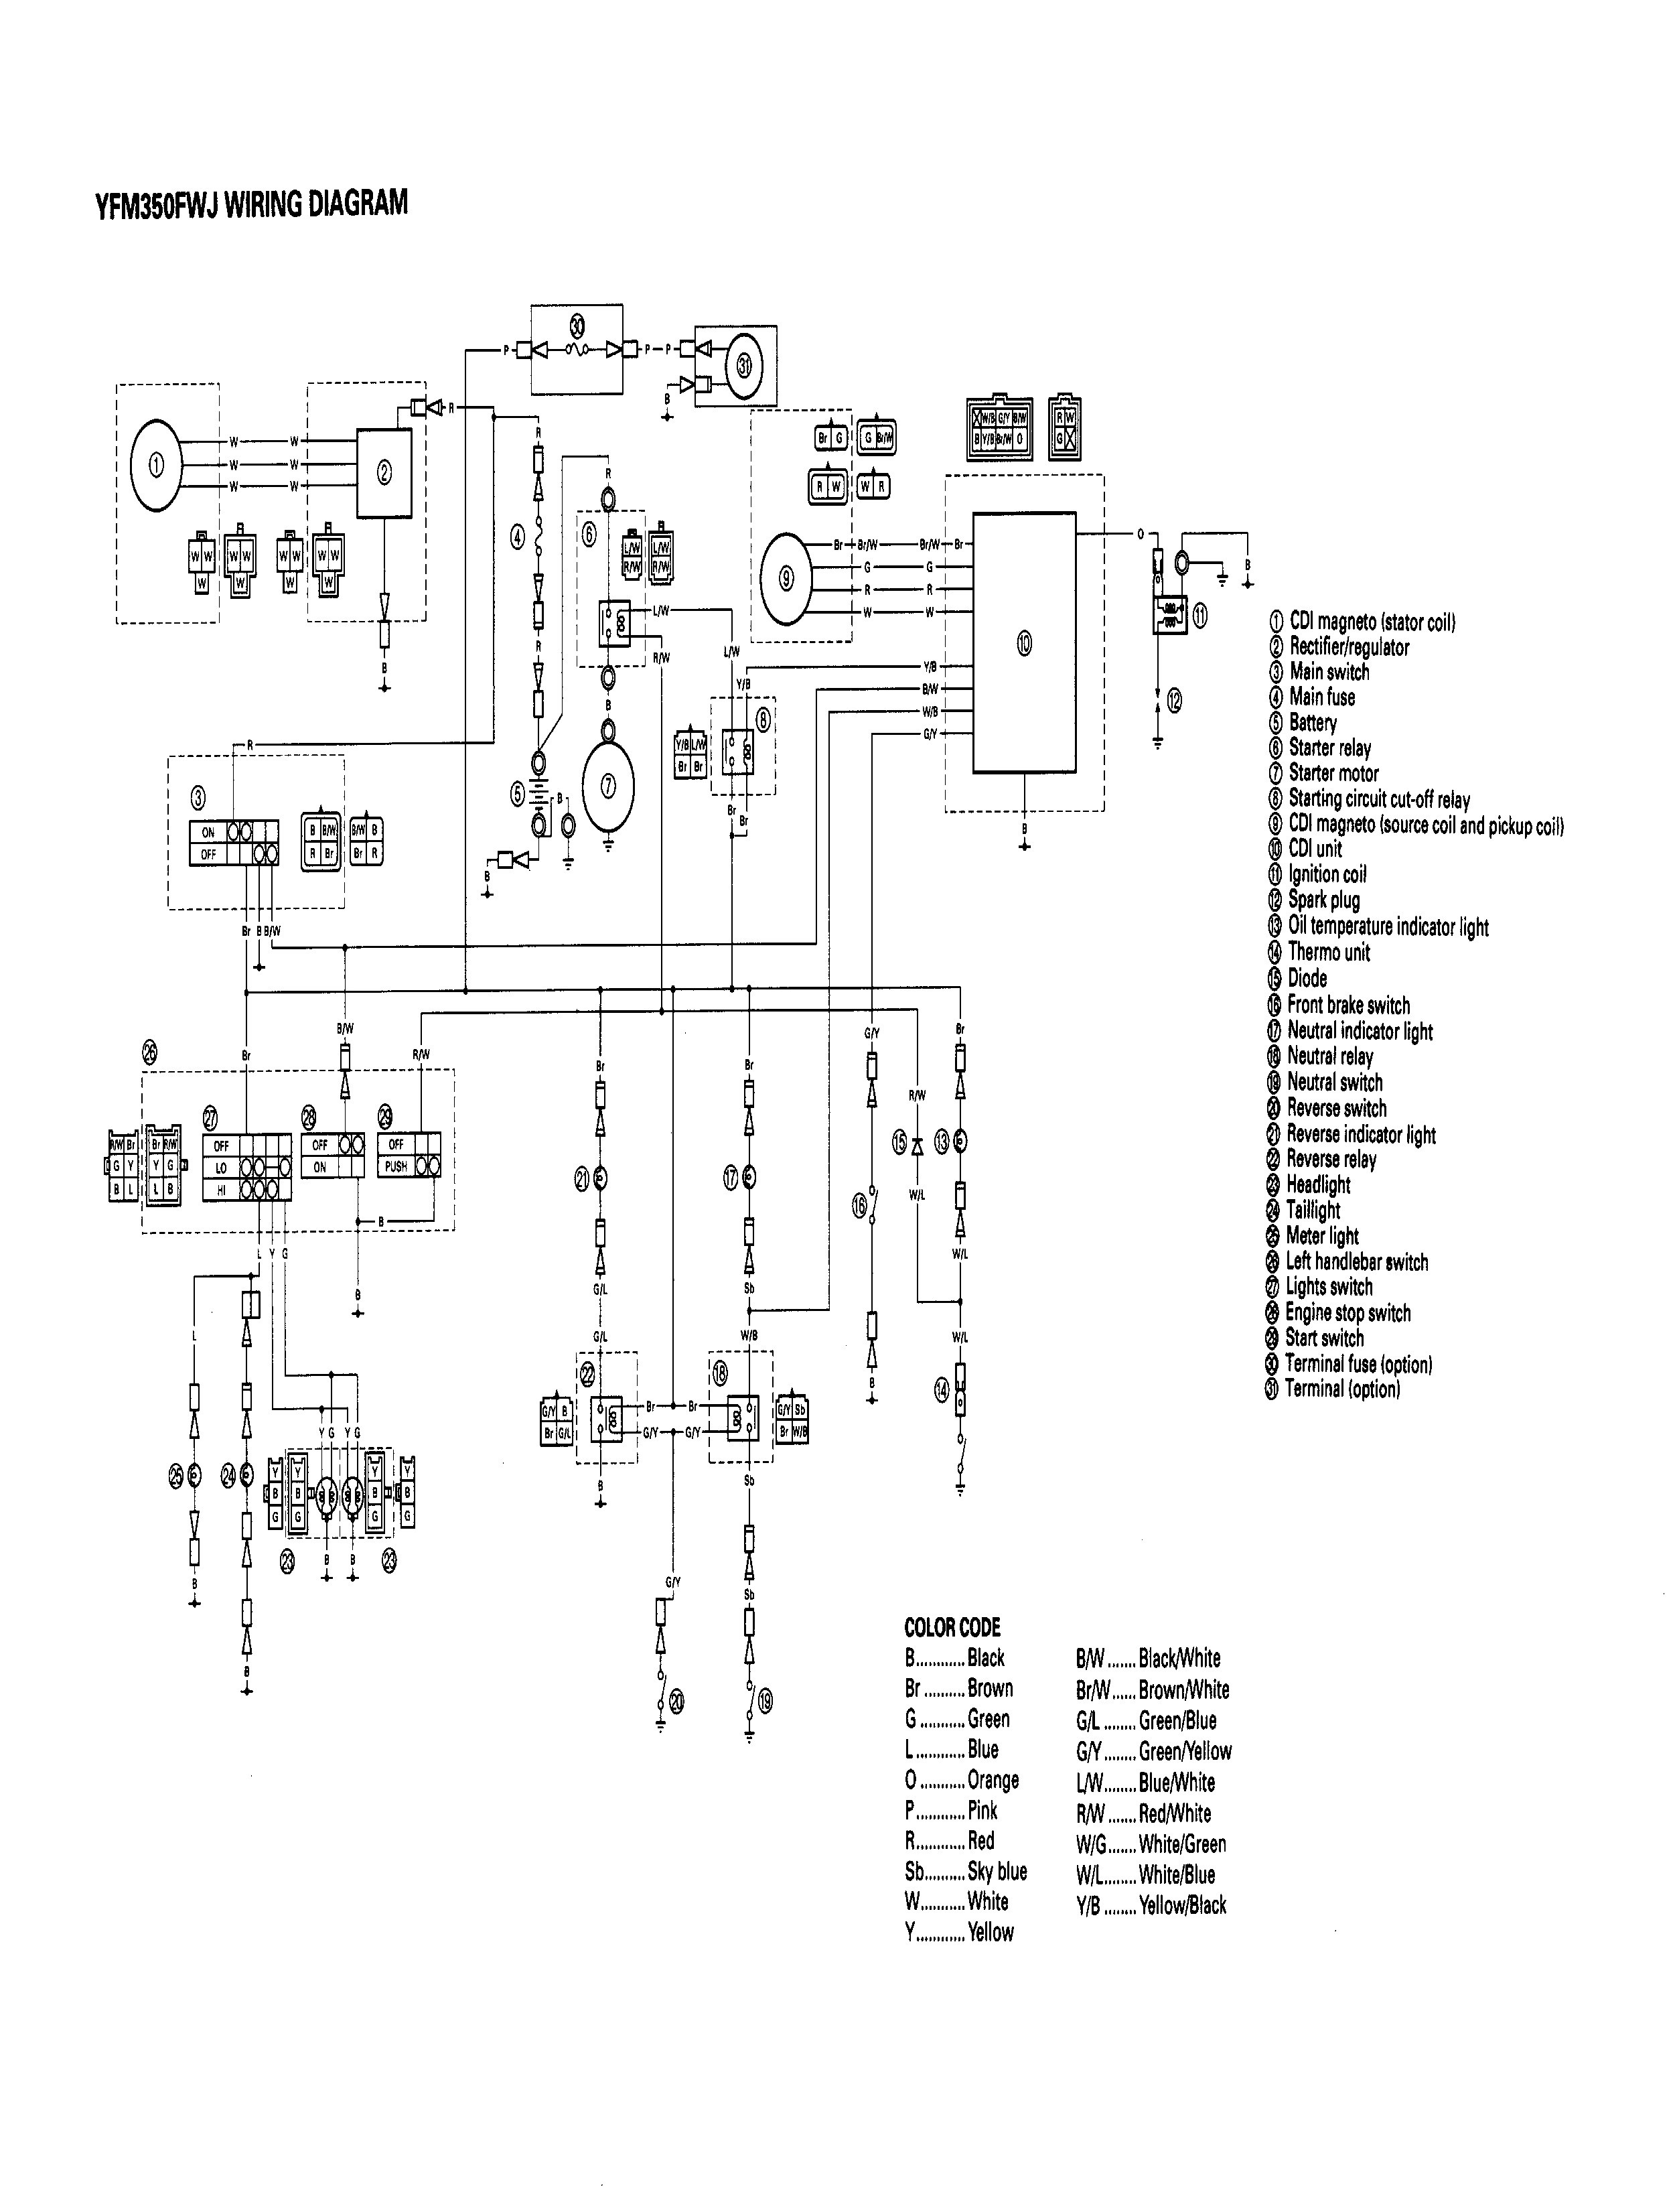 wiring diagram database  honda rancher forum